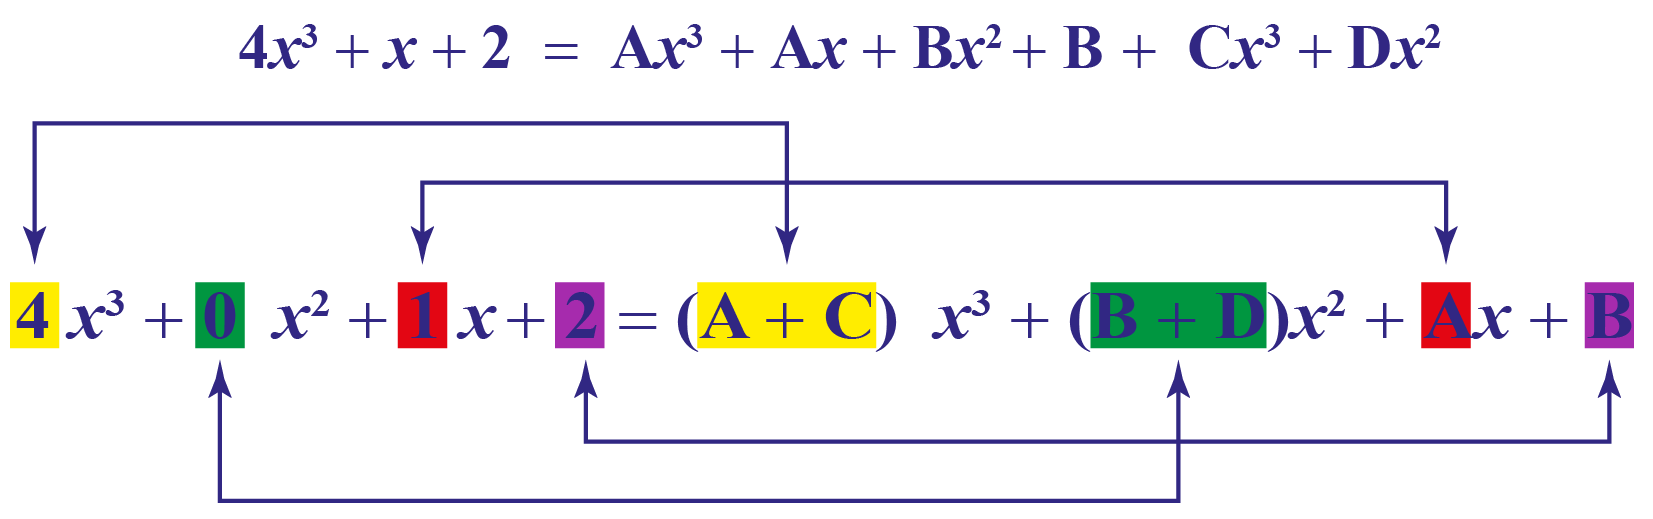 Partial fraction decomposition example: Comparing the coefficients